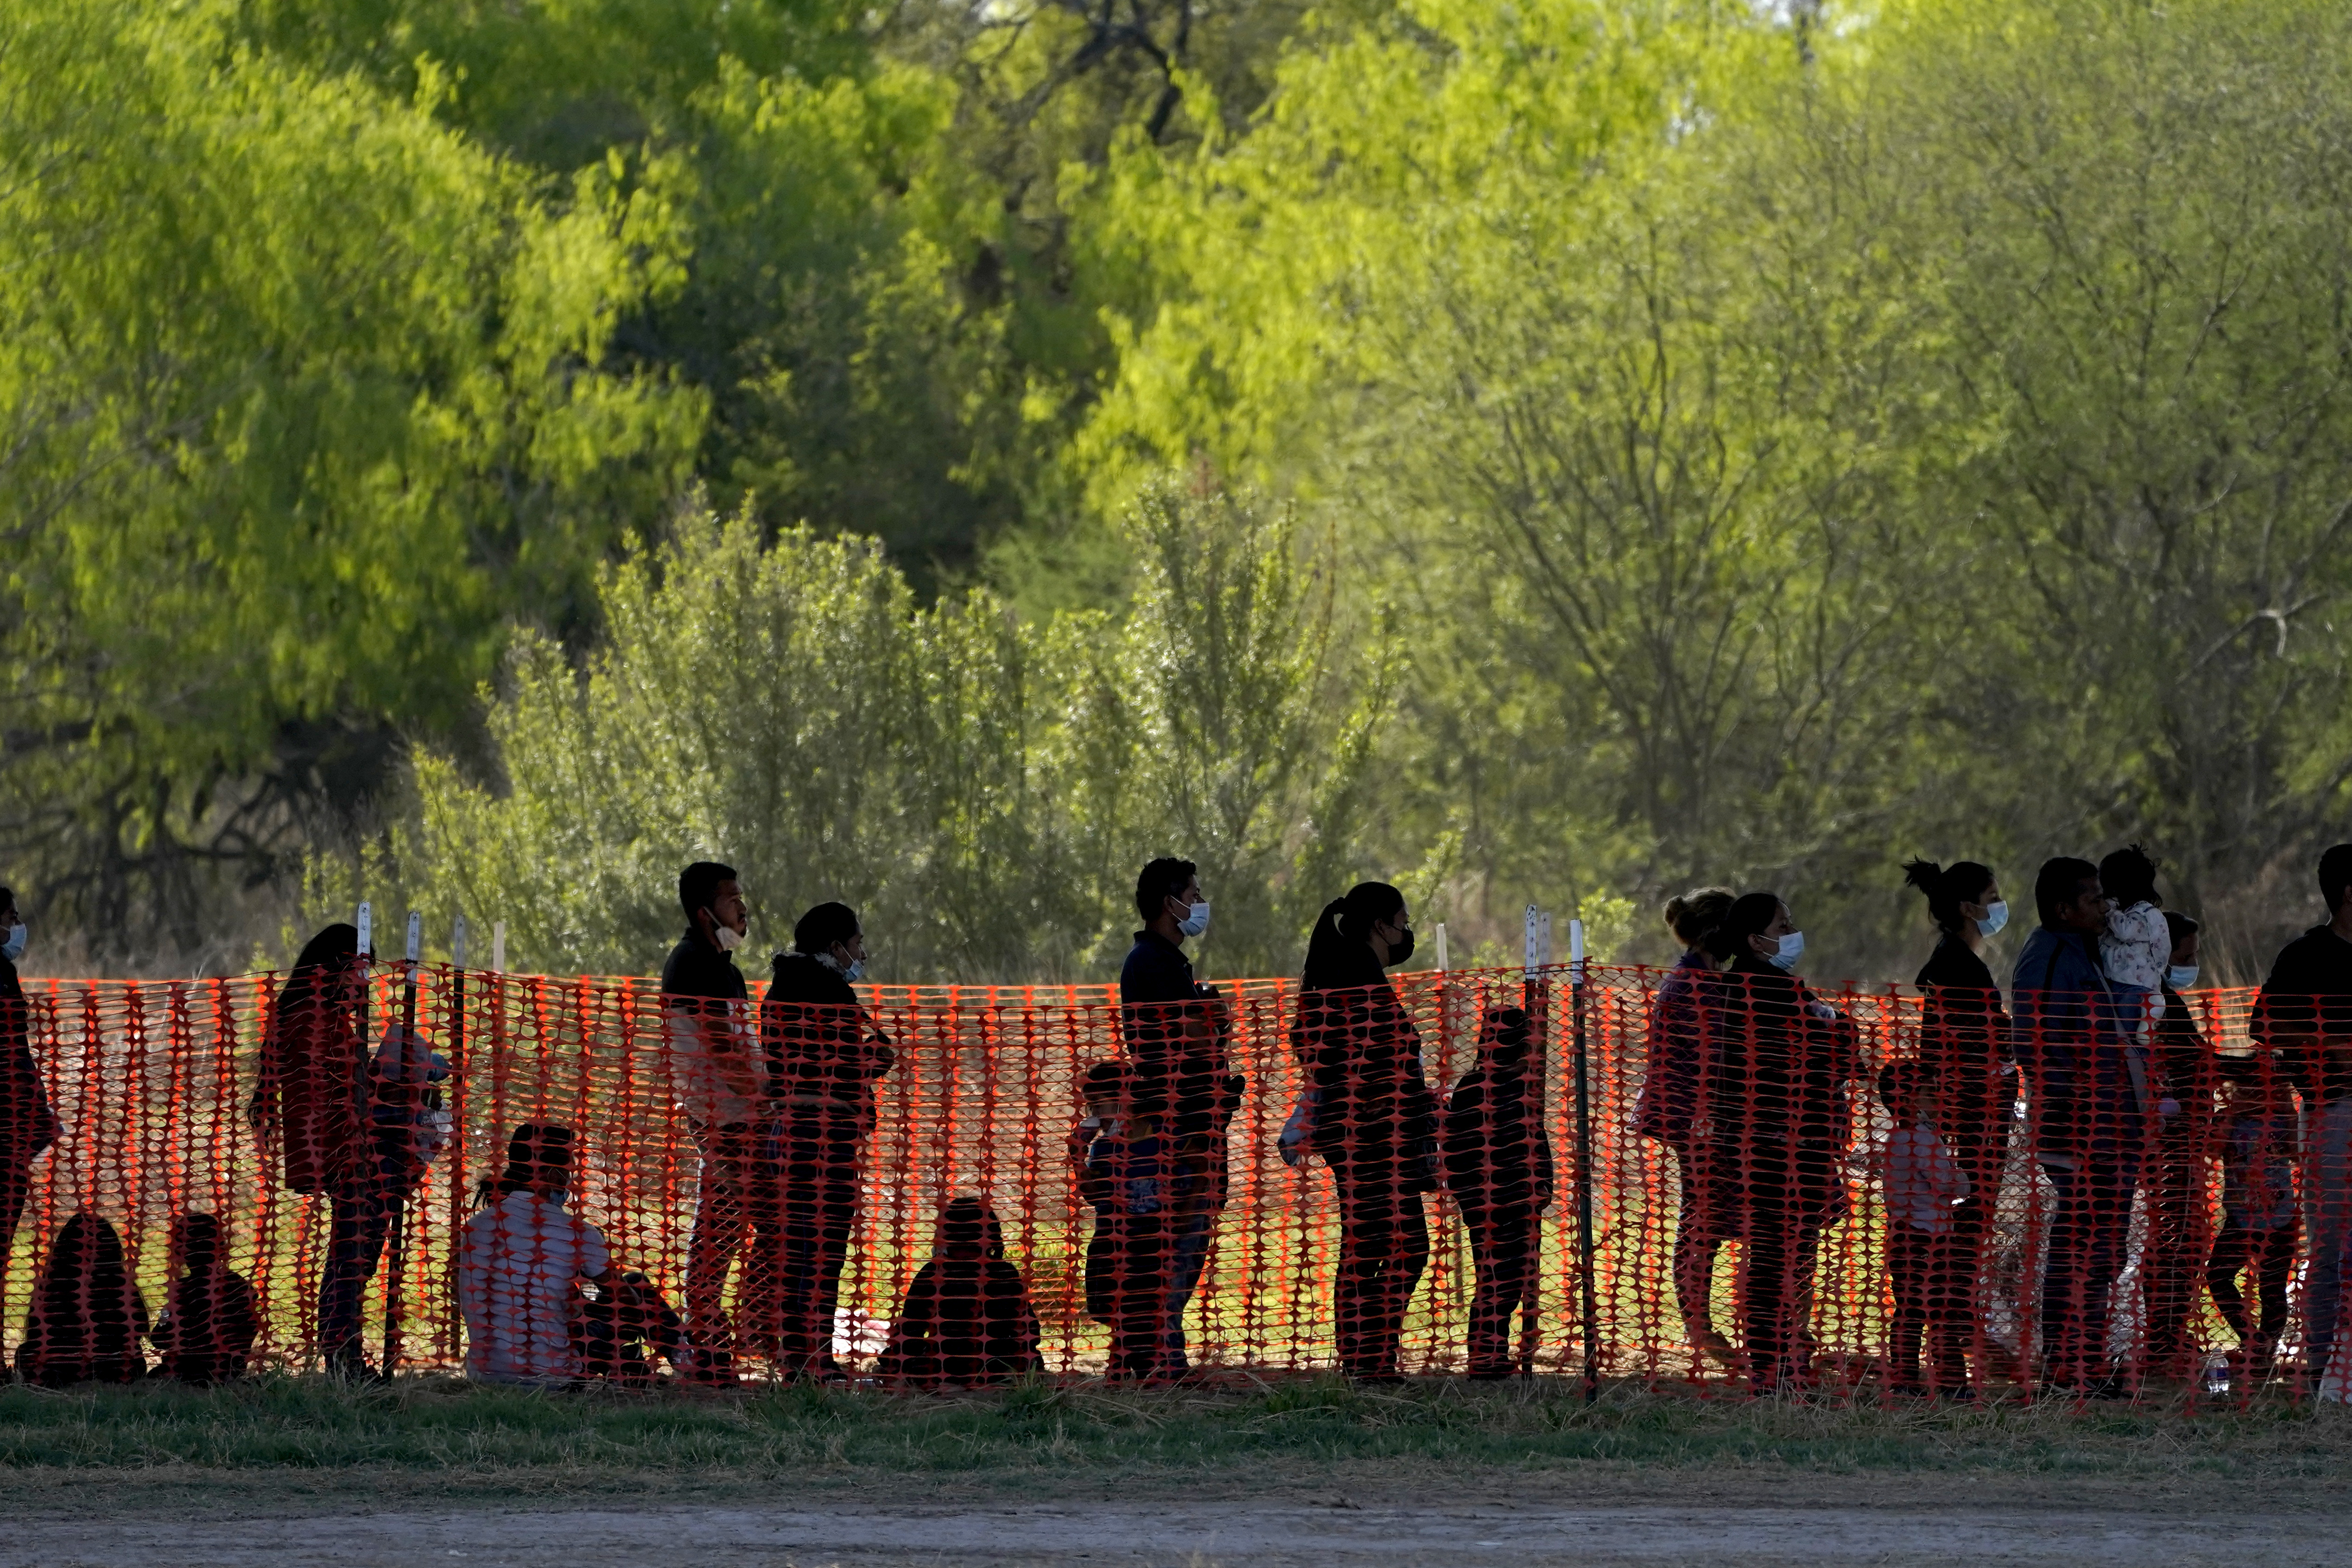 Opinion: Assistance to troubled nations would help solve border crisis